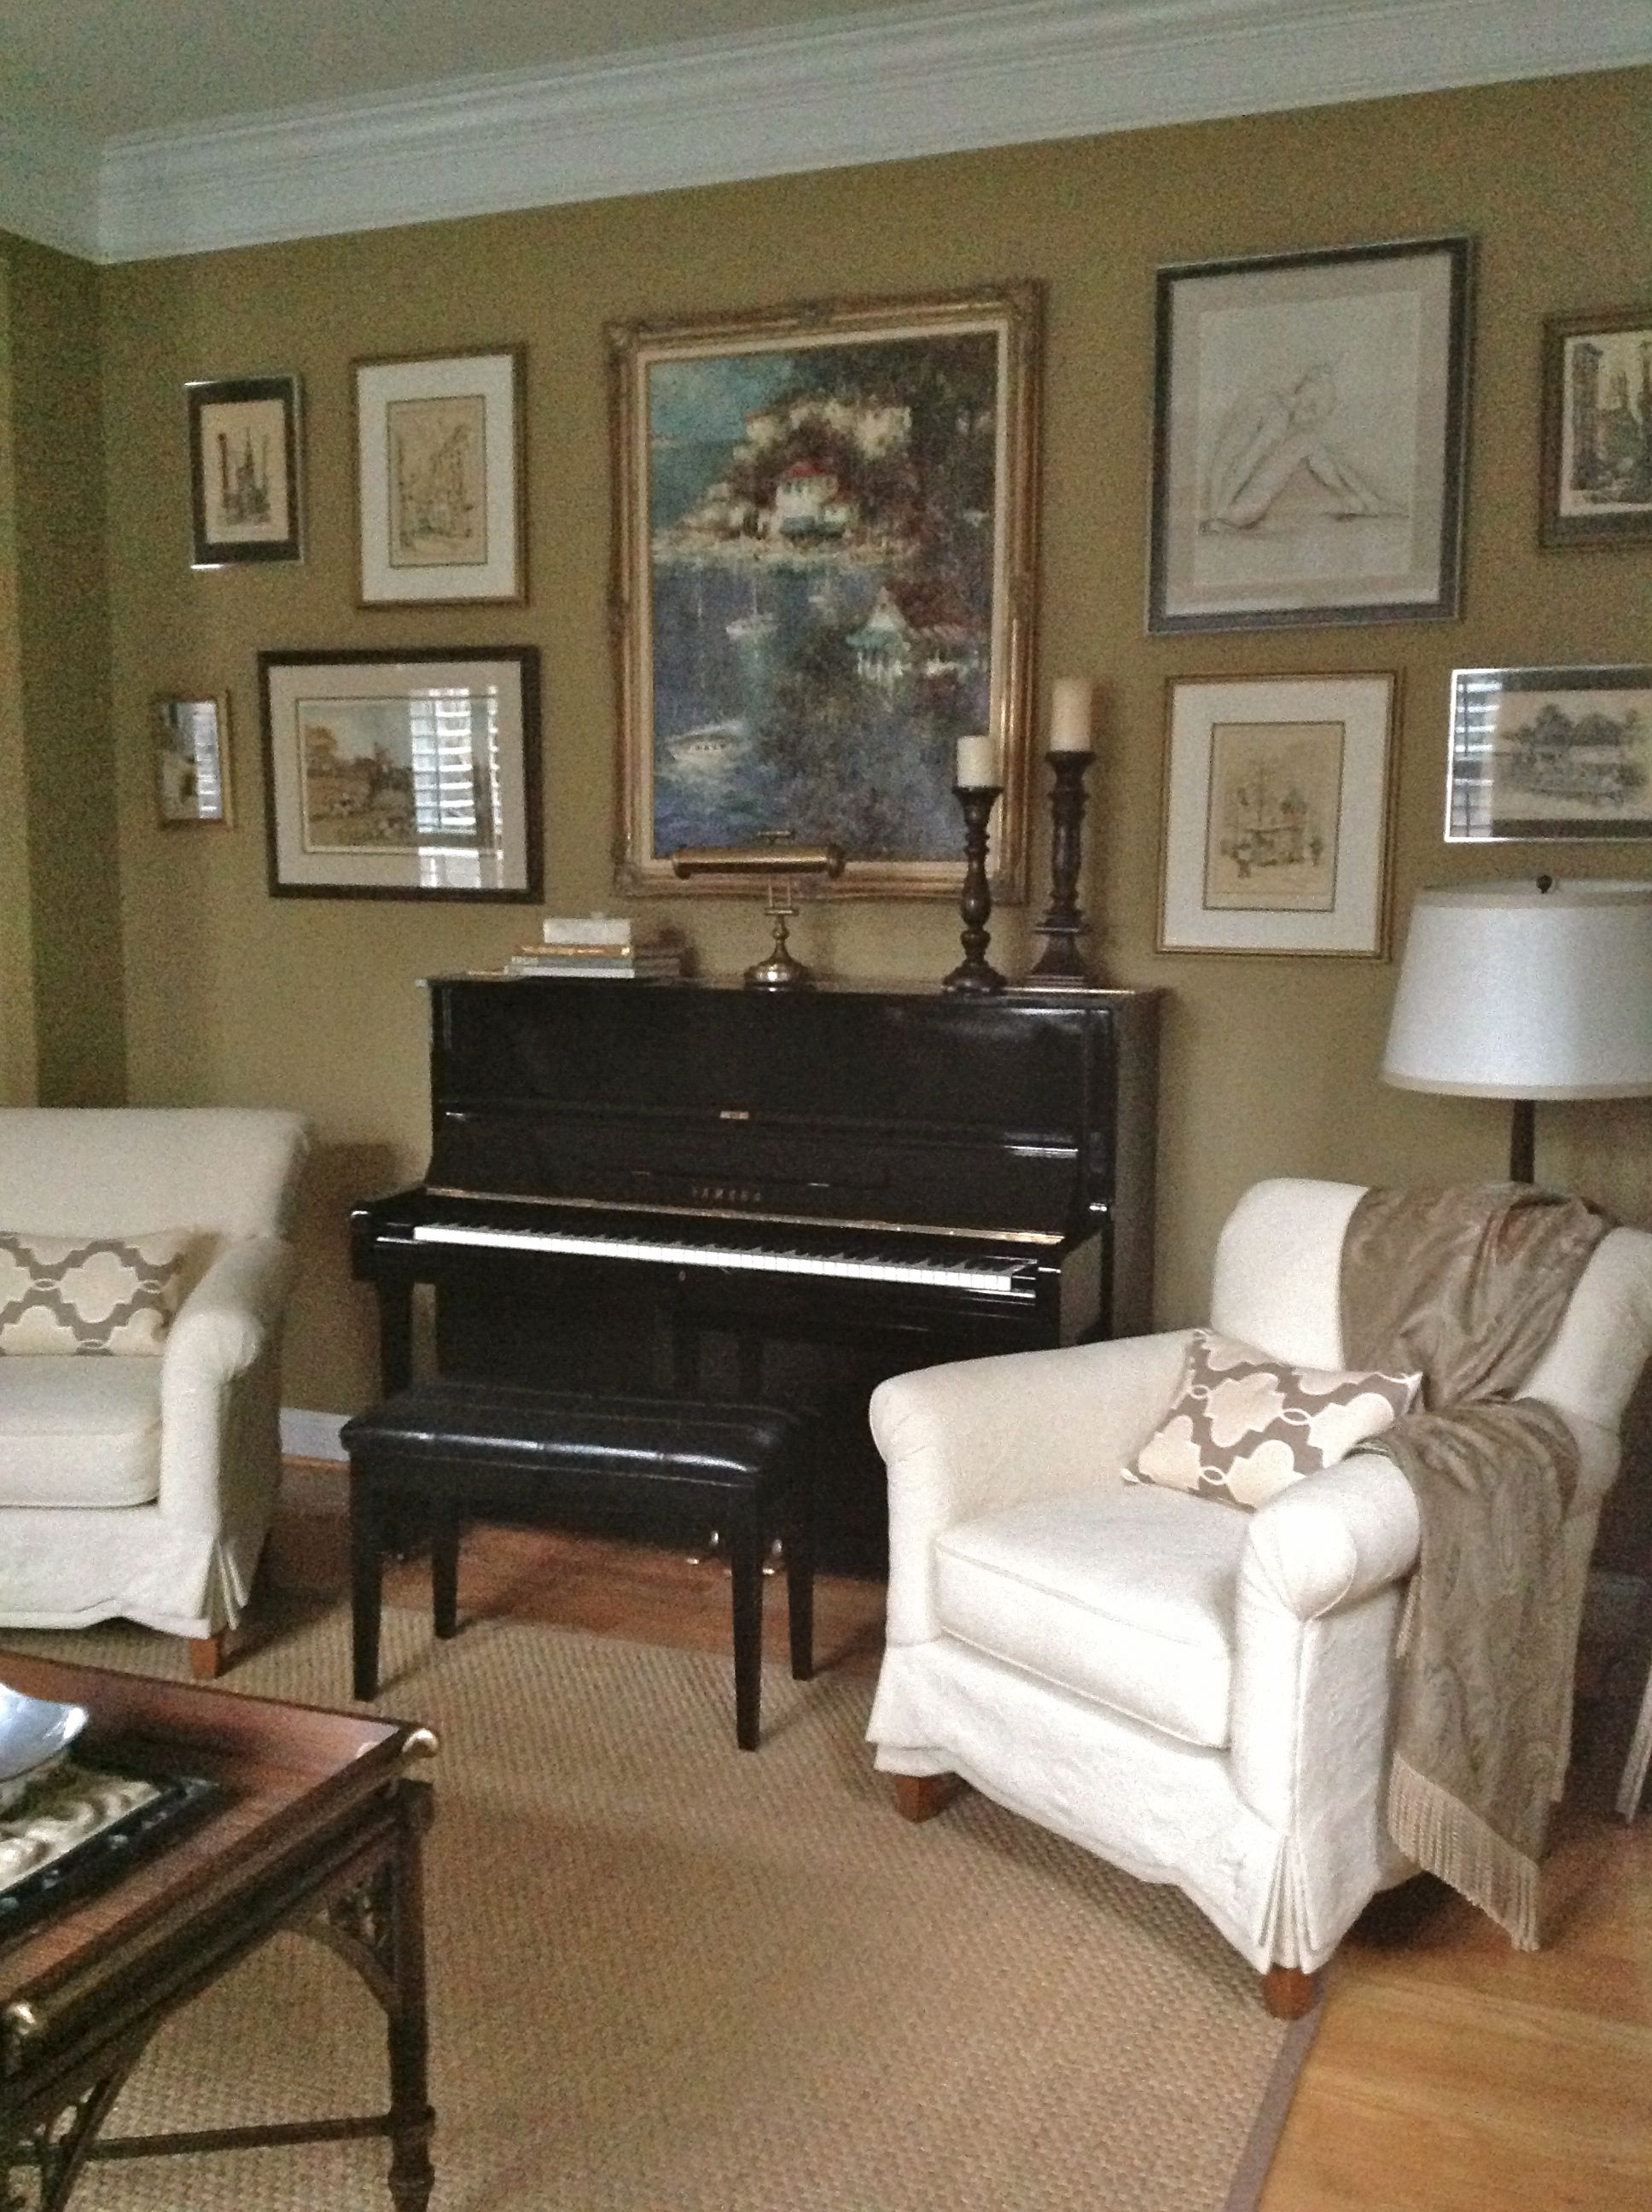 Living Room Gallery Wall: Gallery Wall Around Piano